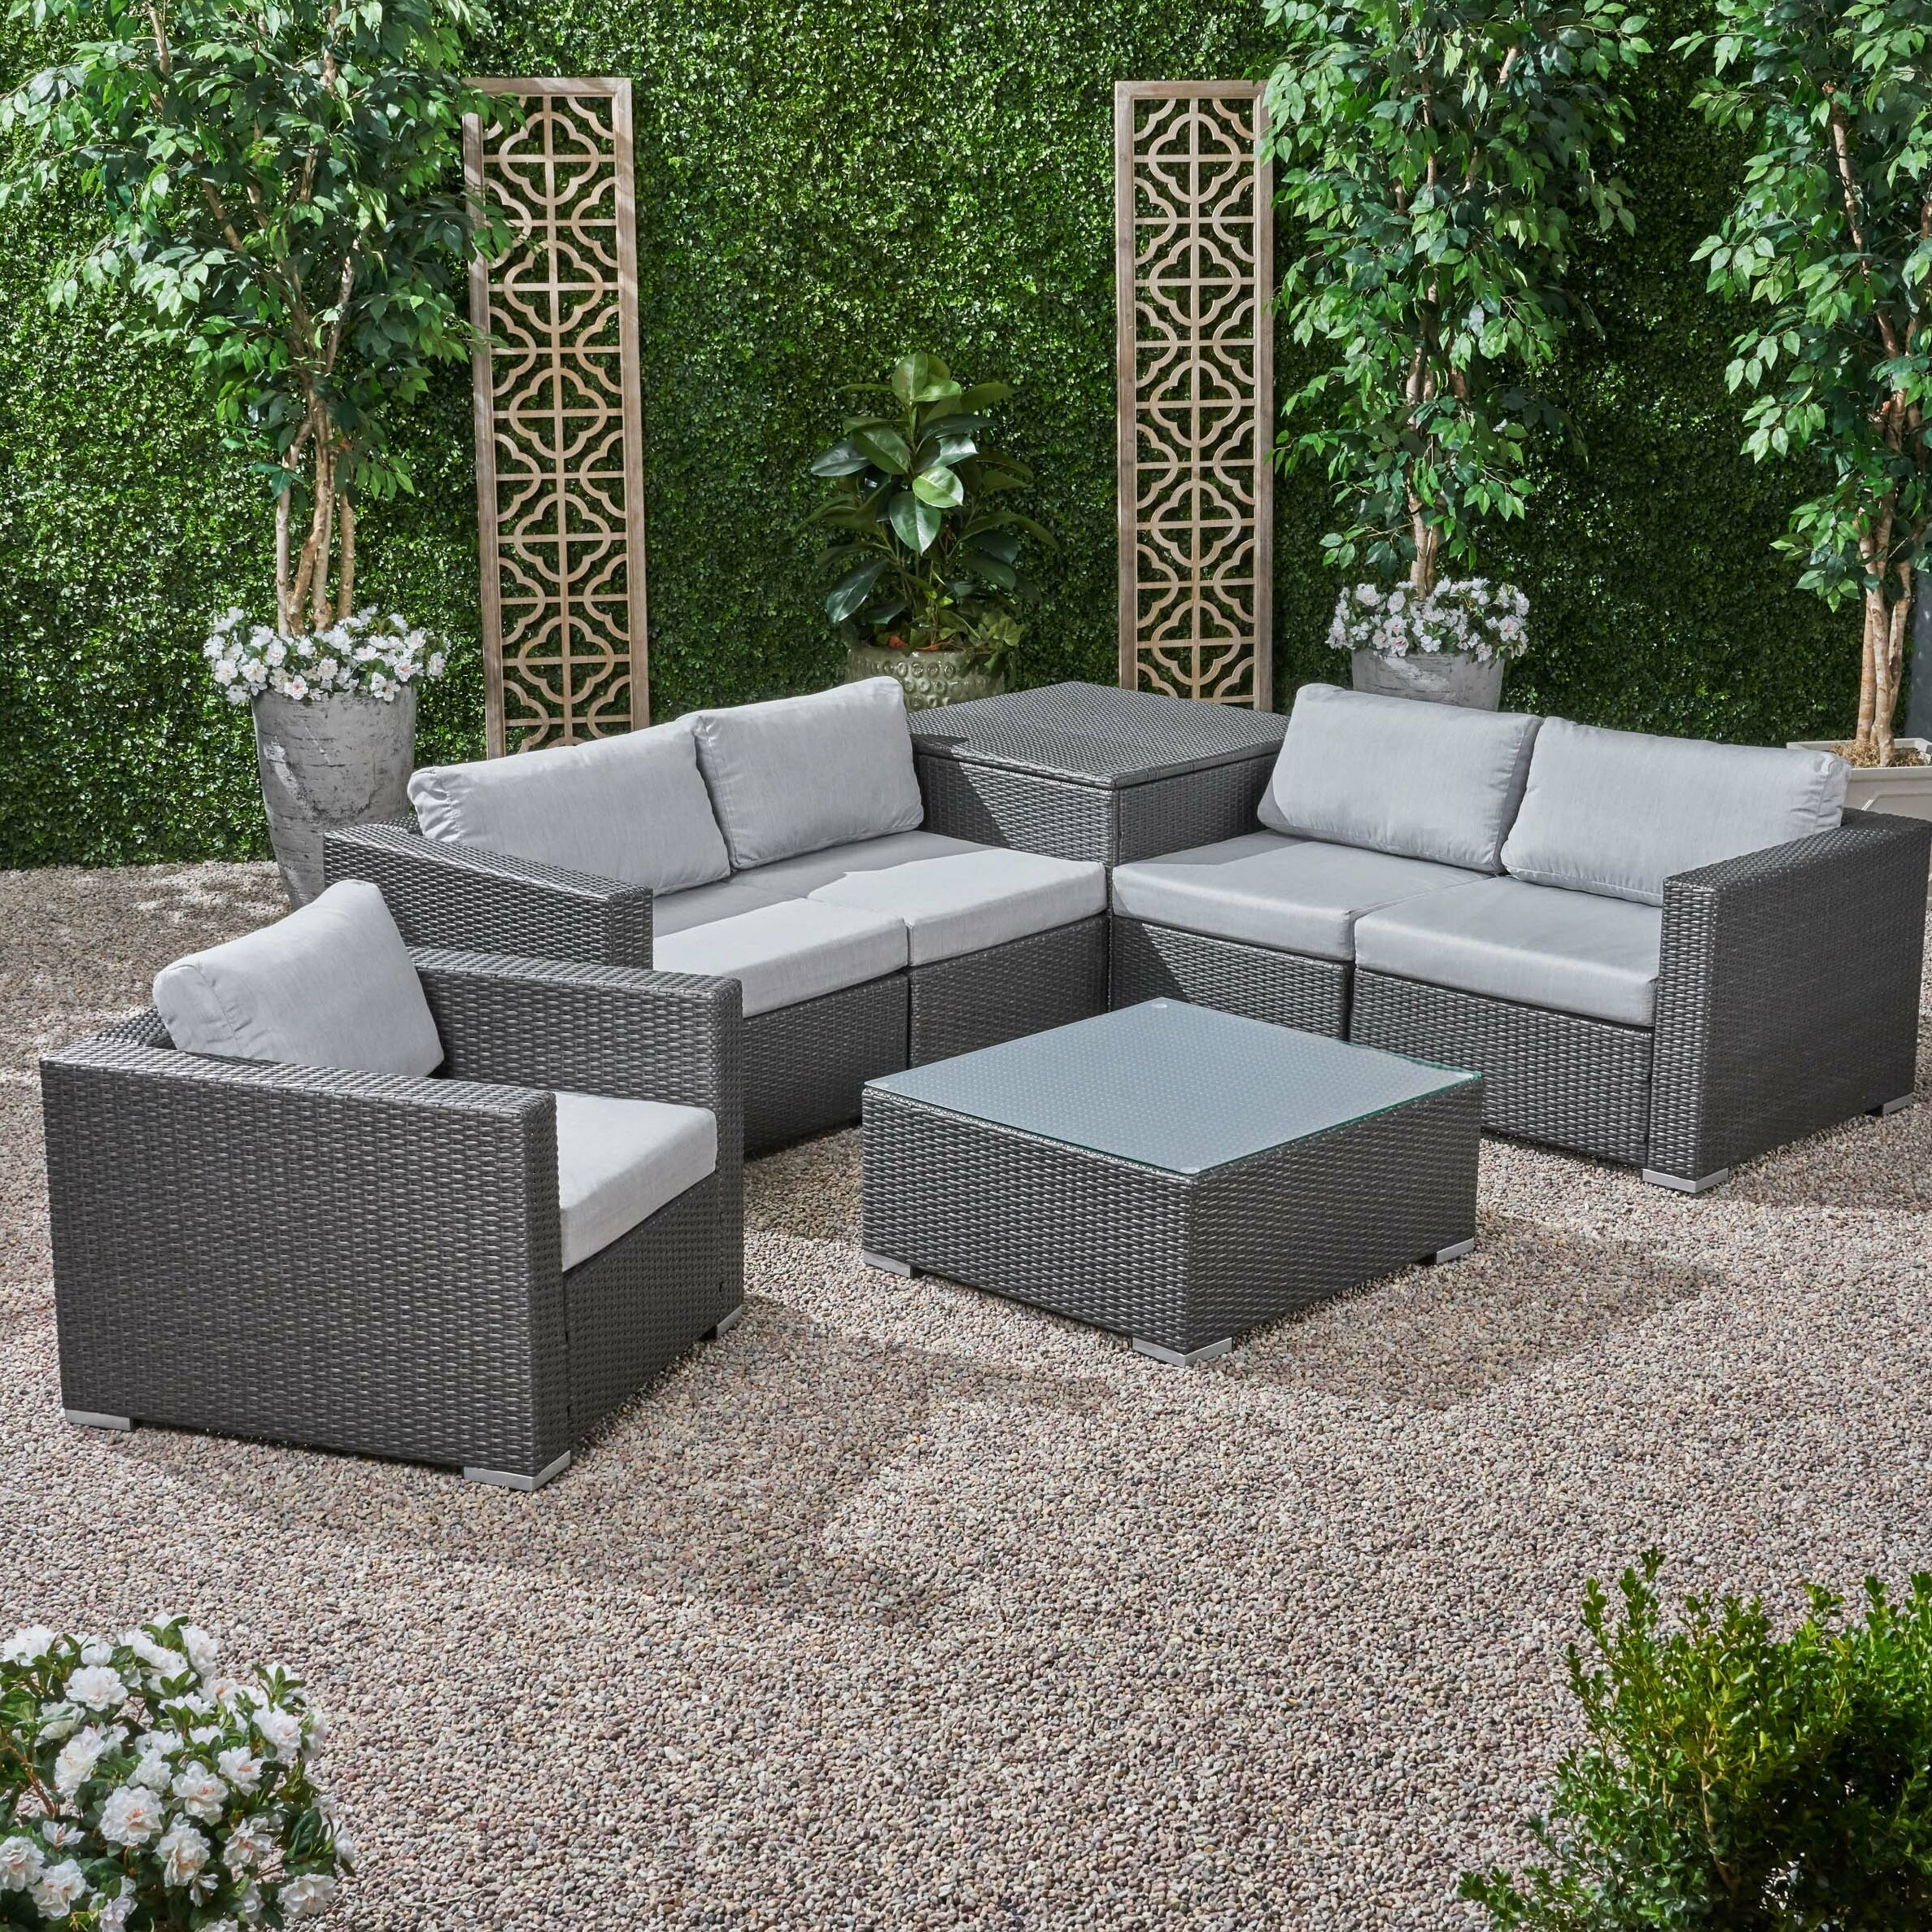 Fine Roxann Outdoor 5 Seater Wicker Sectional Sofa Set With Storage Ottoman And Sunbrella Cushions Ocoug Best Dining Table And Chair Ideas Images Ocougorg